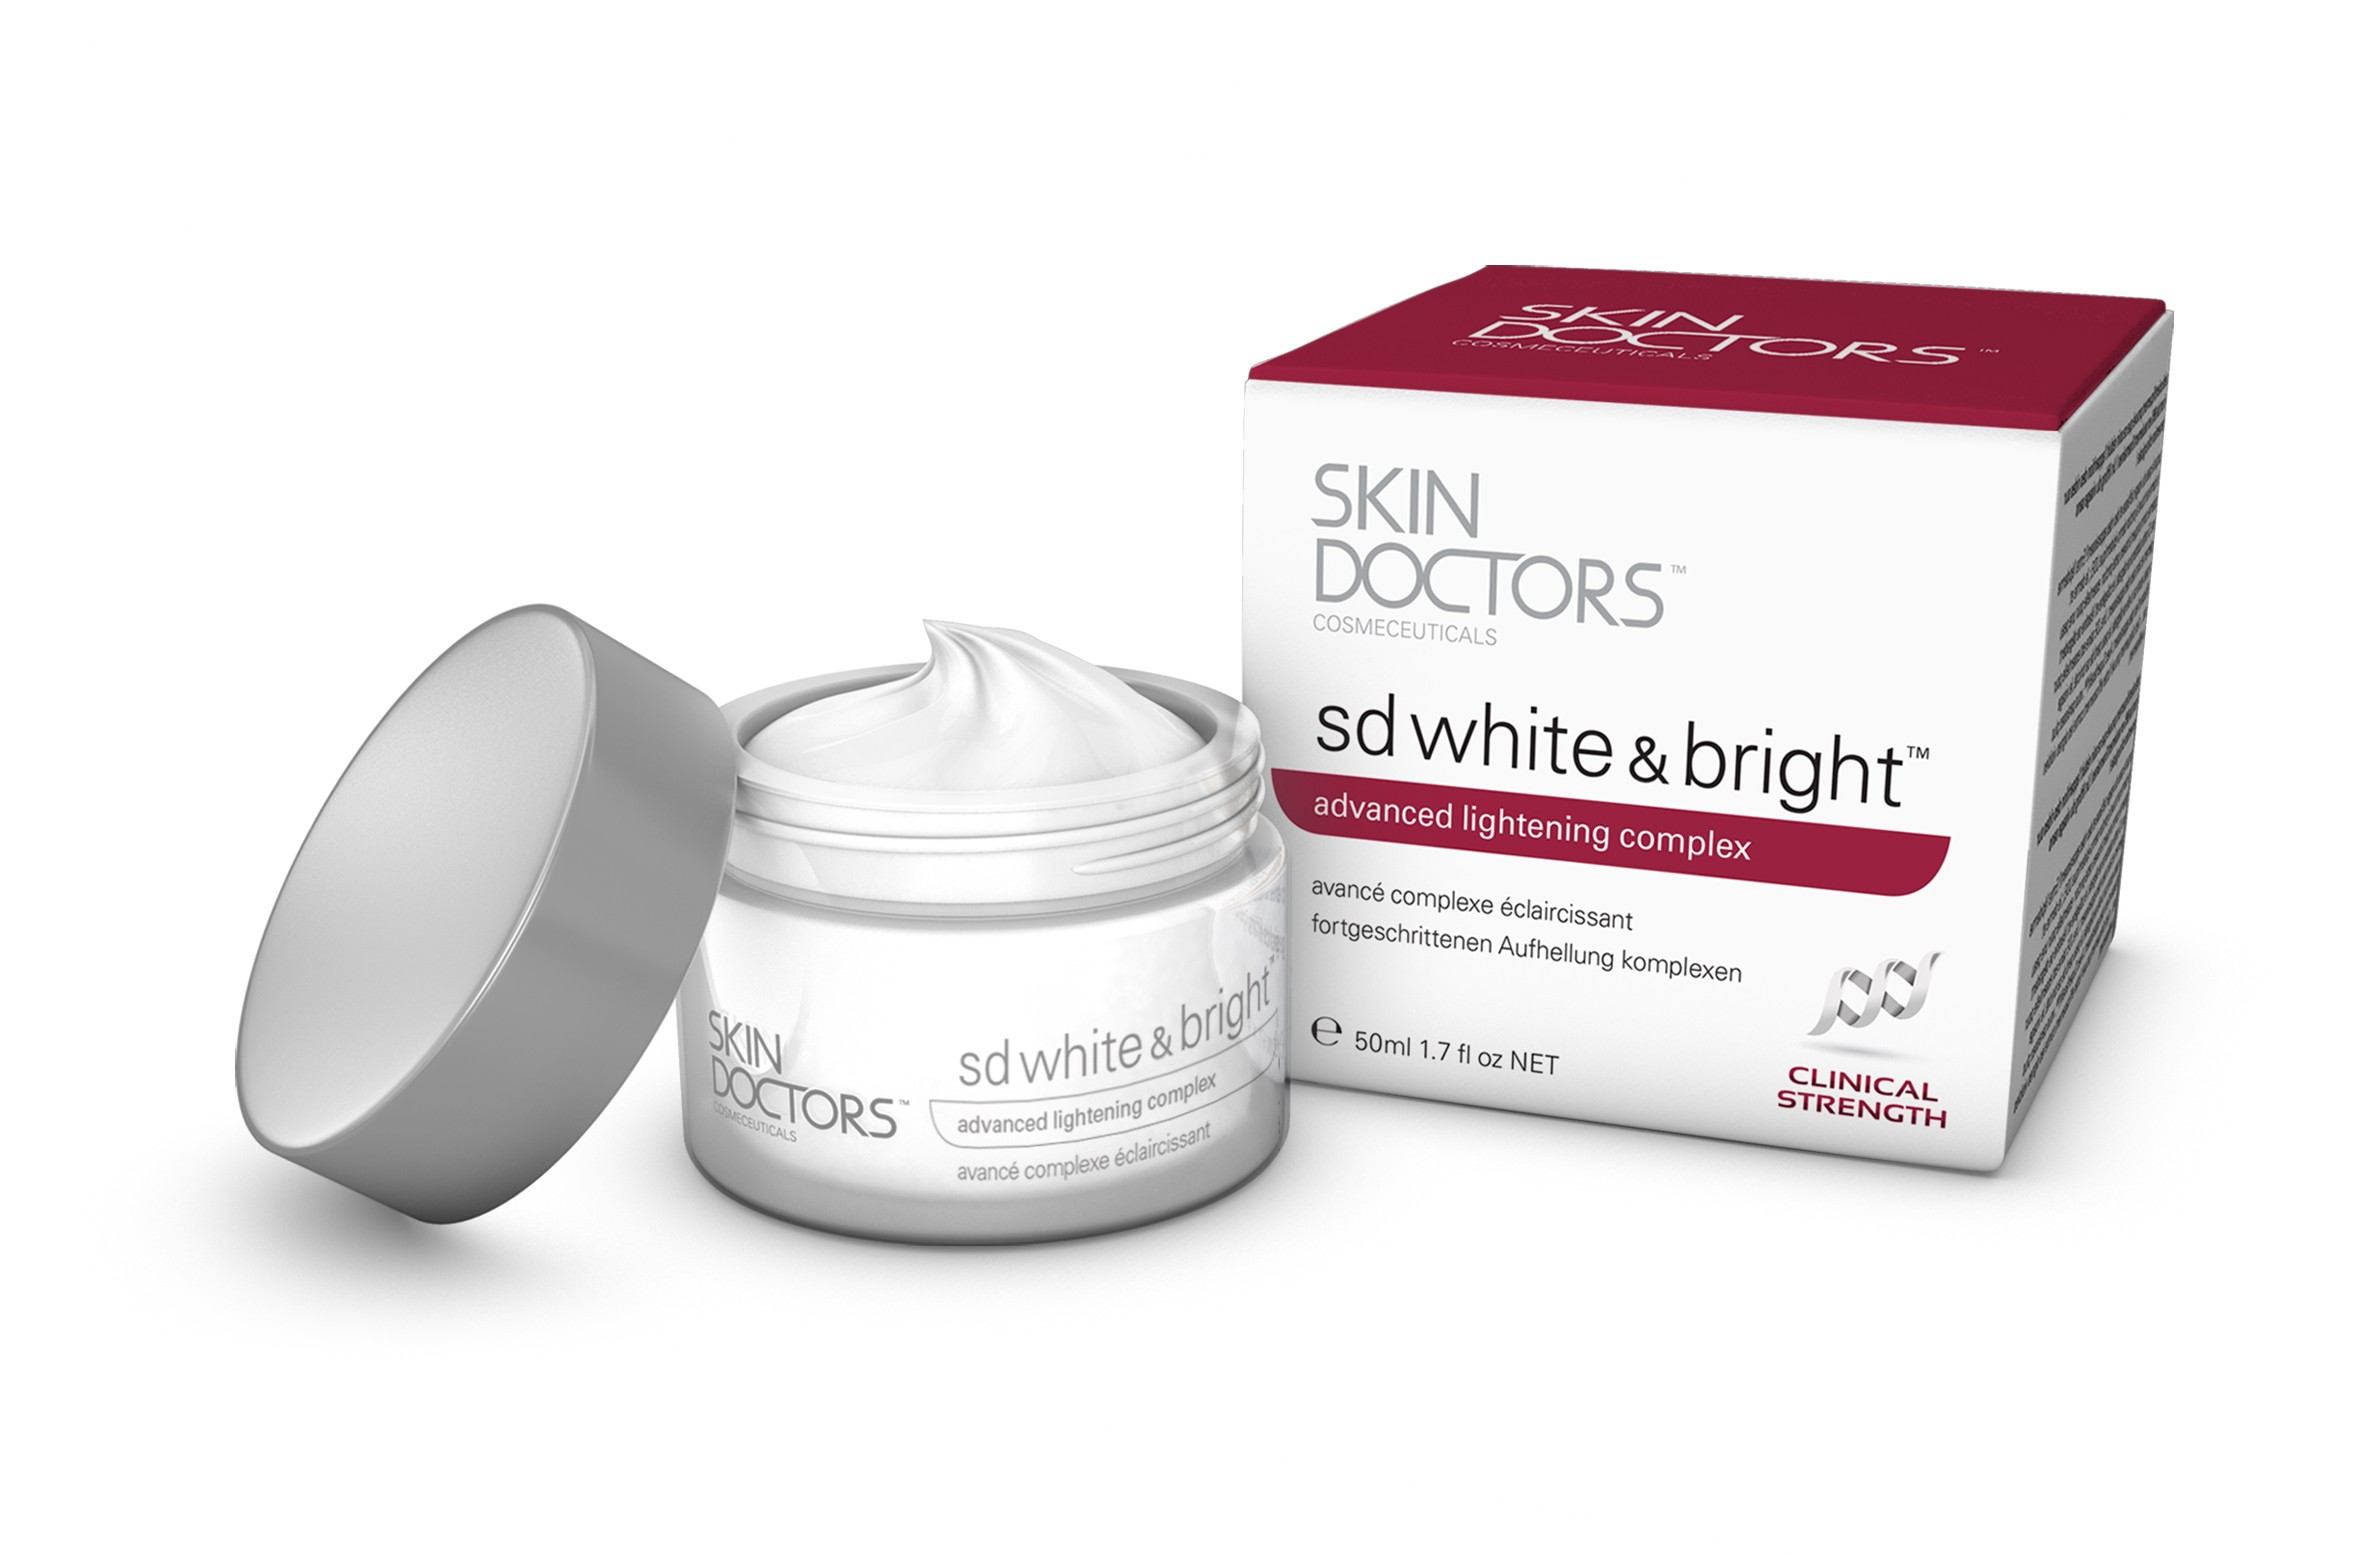 skin doctors cosmeceuticals reviews